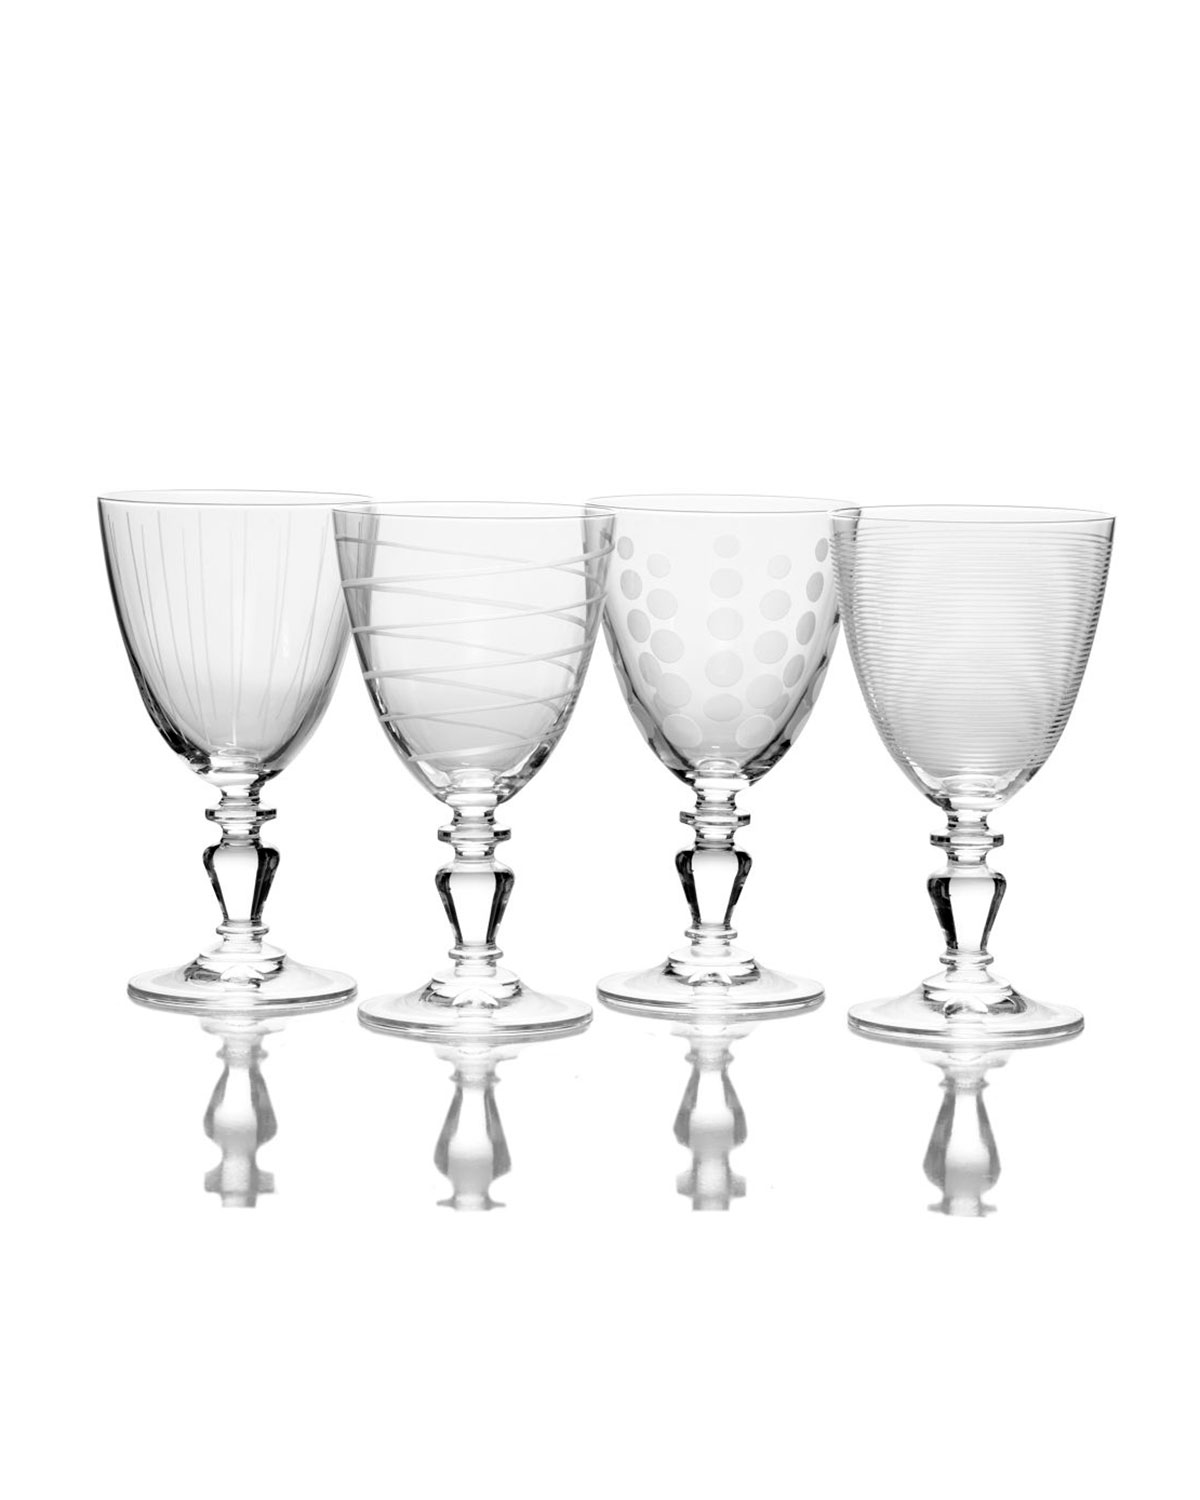 Mikasa Cheers Vintage Wine Glasses, Set of 4